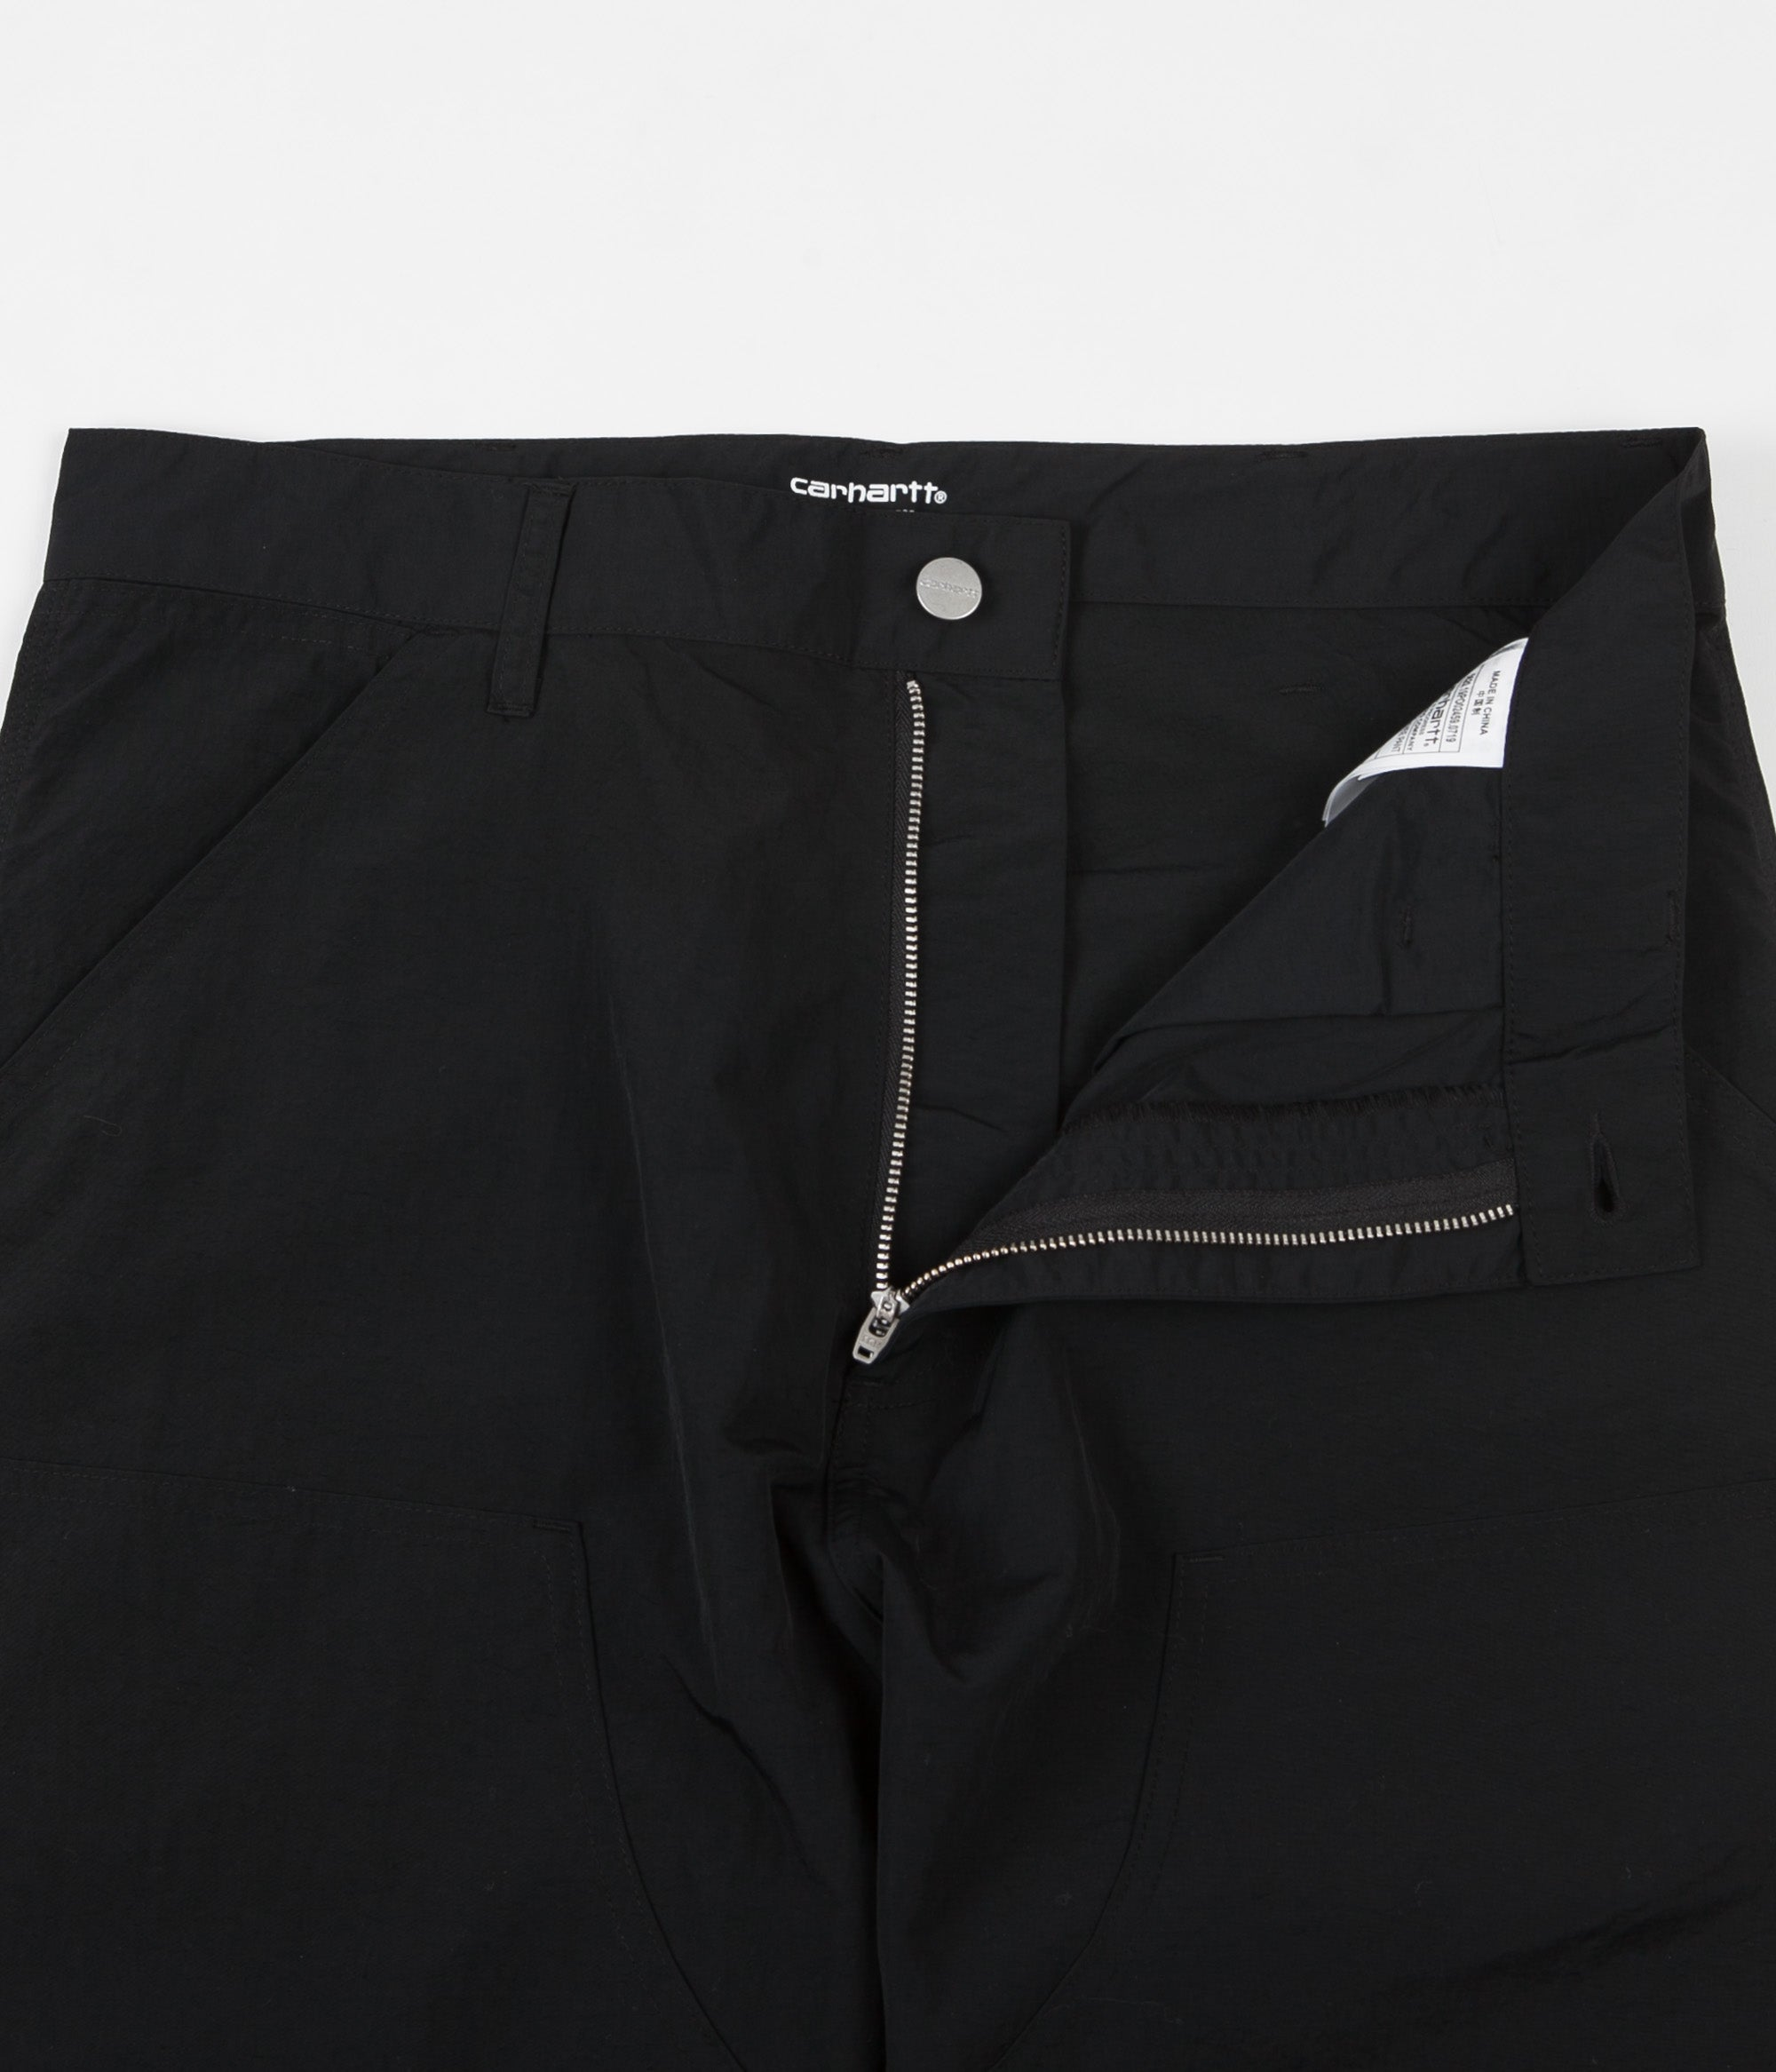 Pop Trading Company x Carhartt Double Knee Pants - Black